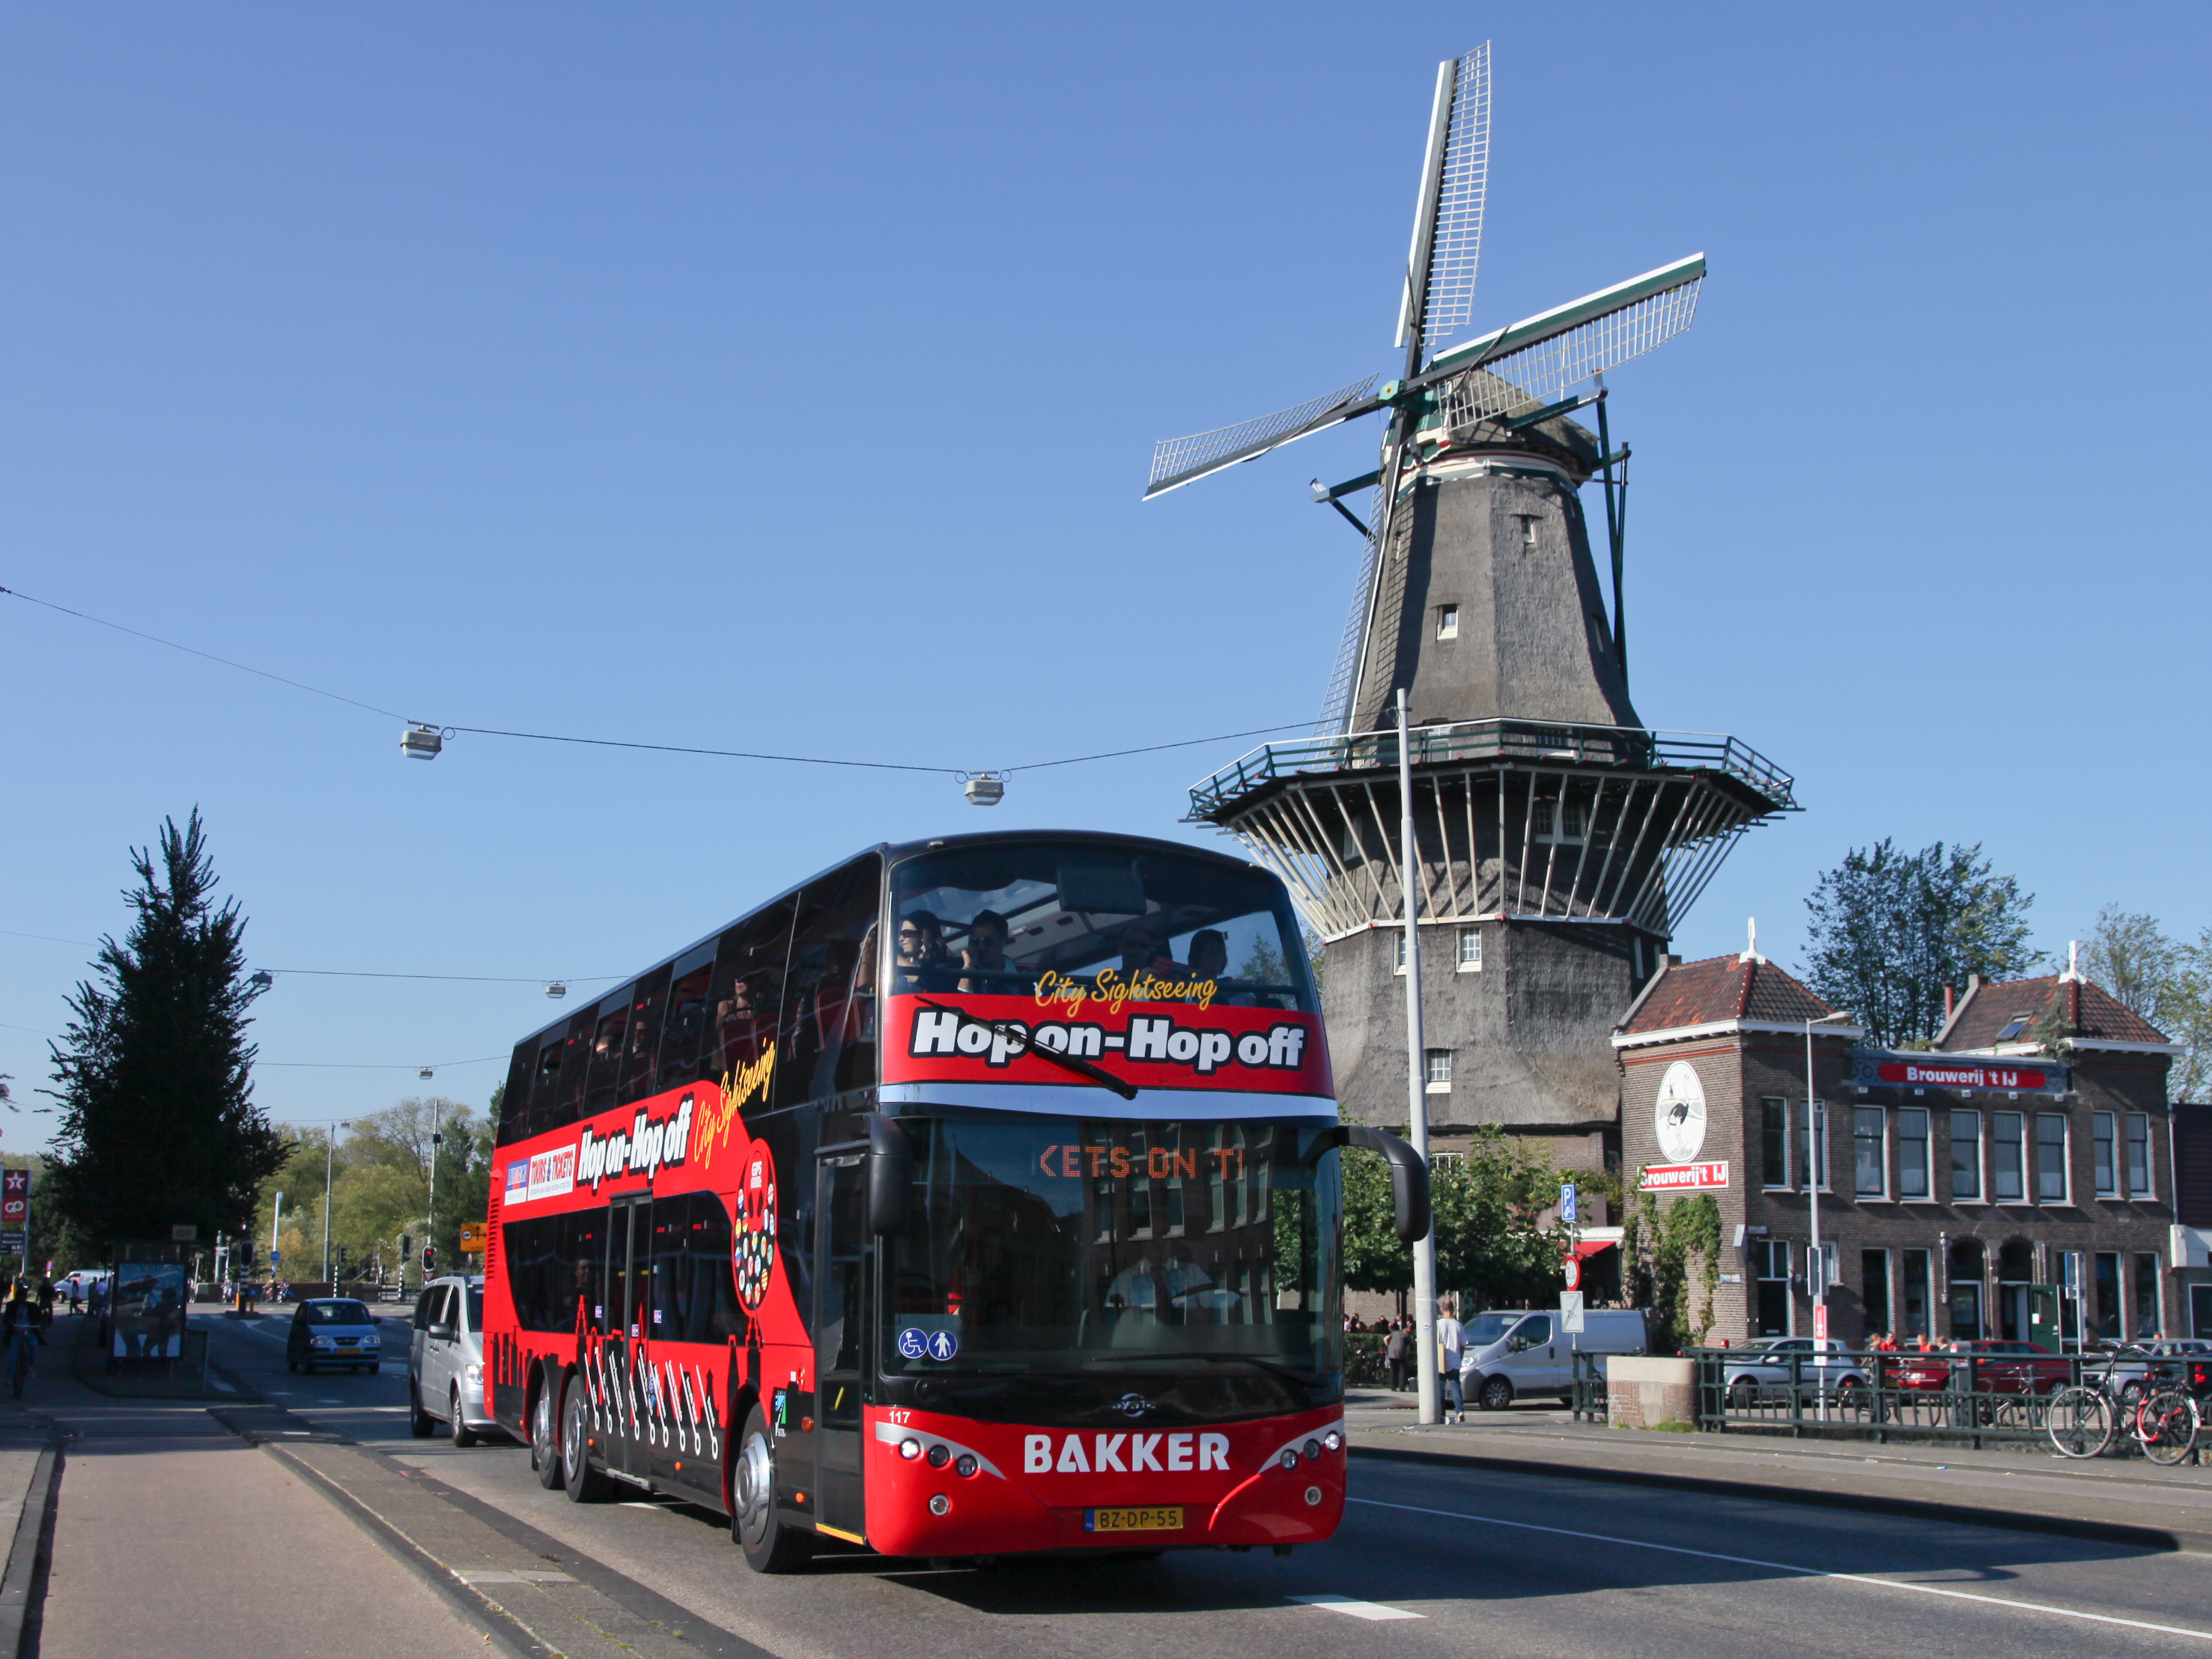 axiwi-wireless-communication-system-guided-city-tours